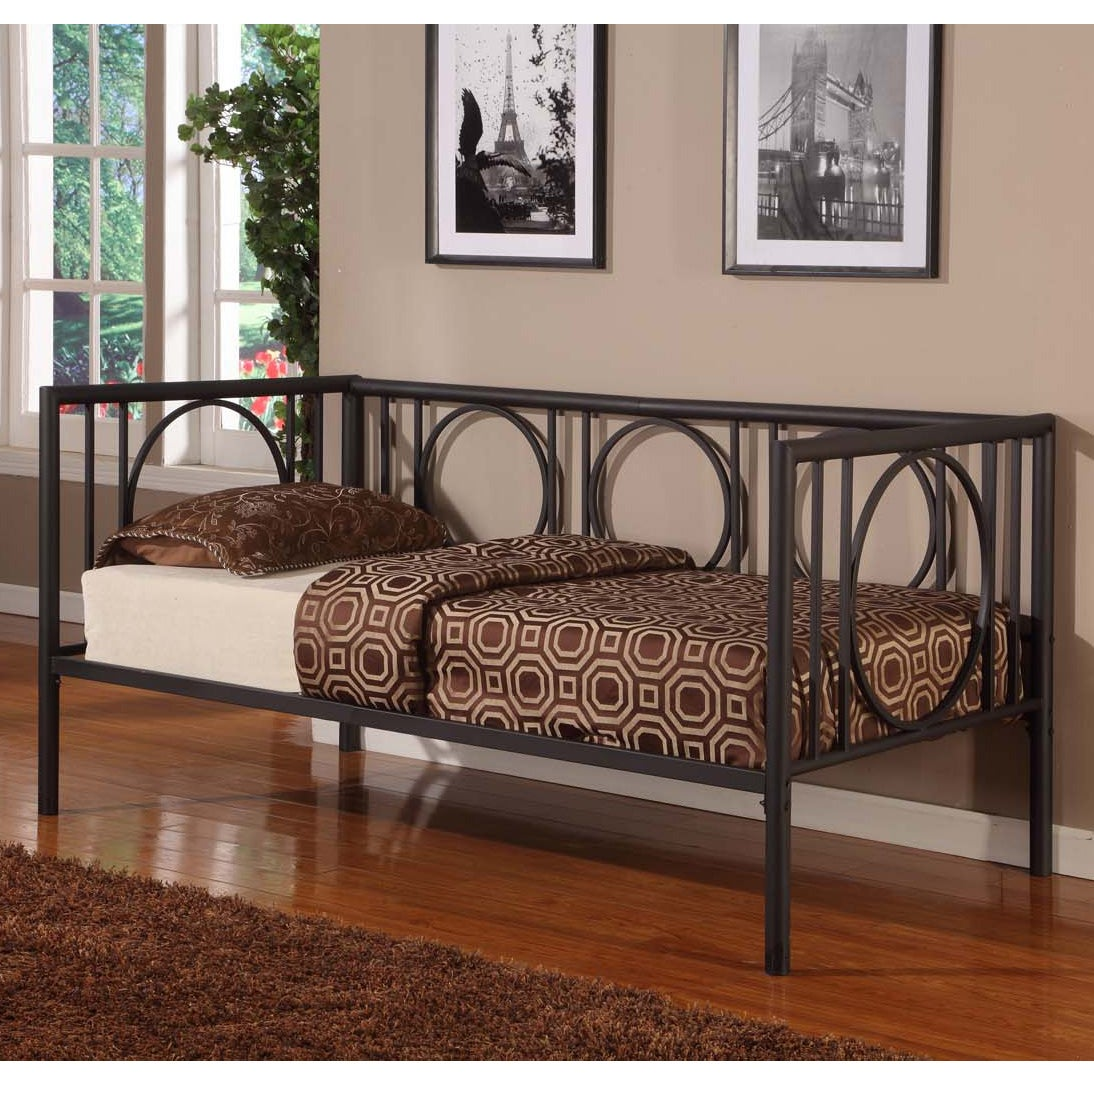 K&B DB001 Black Finish Day Bed (/), Size Twin